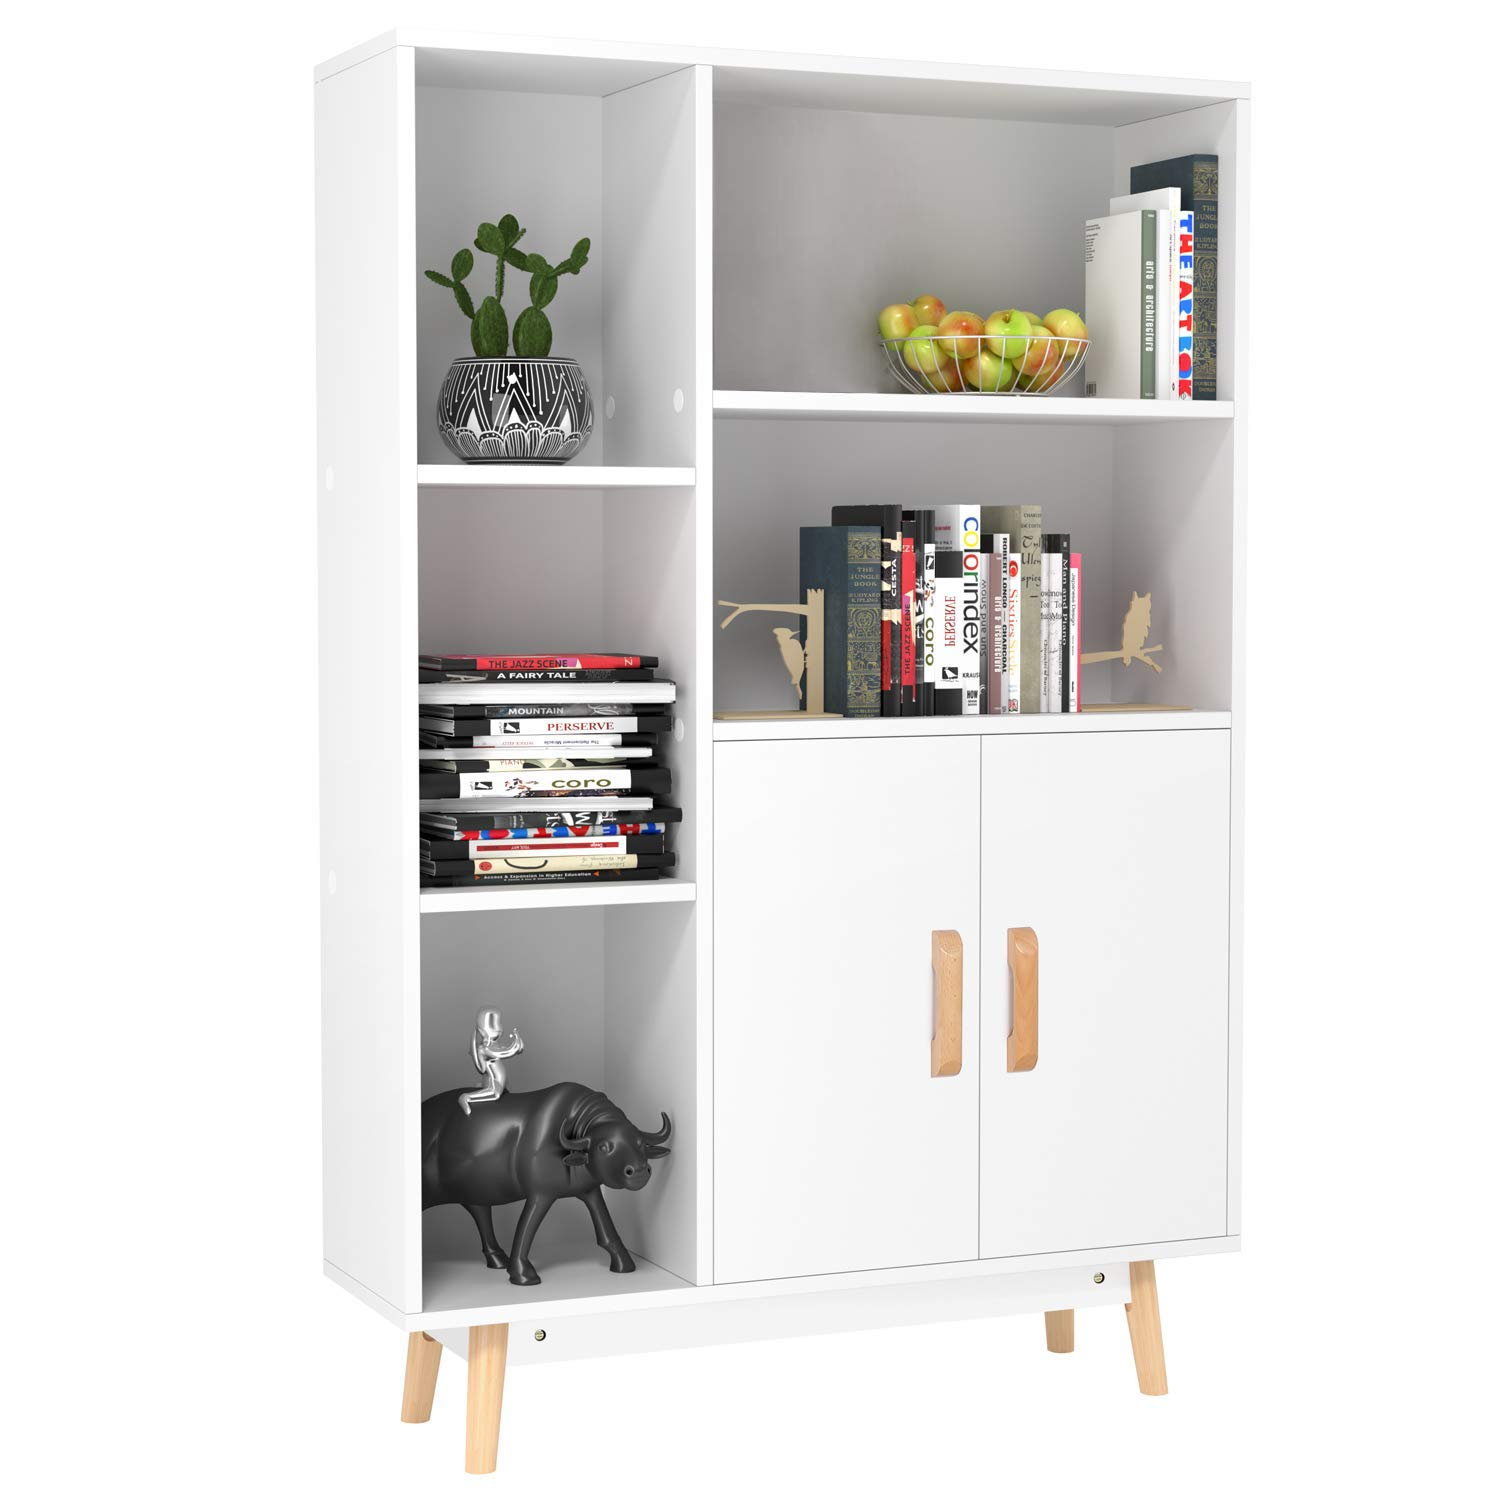 Homfa Floor Storage Cabinet, Free Standing Wooden Display Bookcase with Double Doors, 2 Shelves, 3 Cubes and 4 Legs, Side Cabinet Decor Furniture for Home Office, White by Homfa